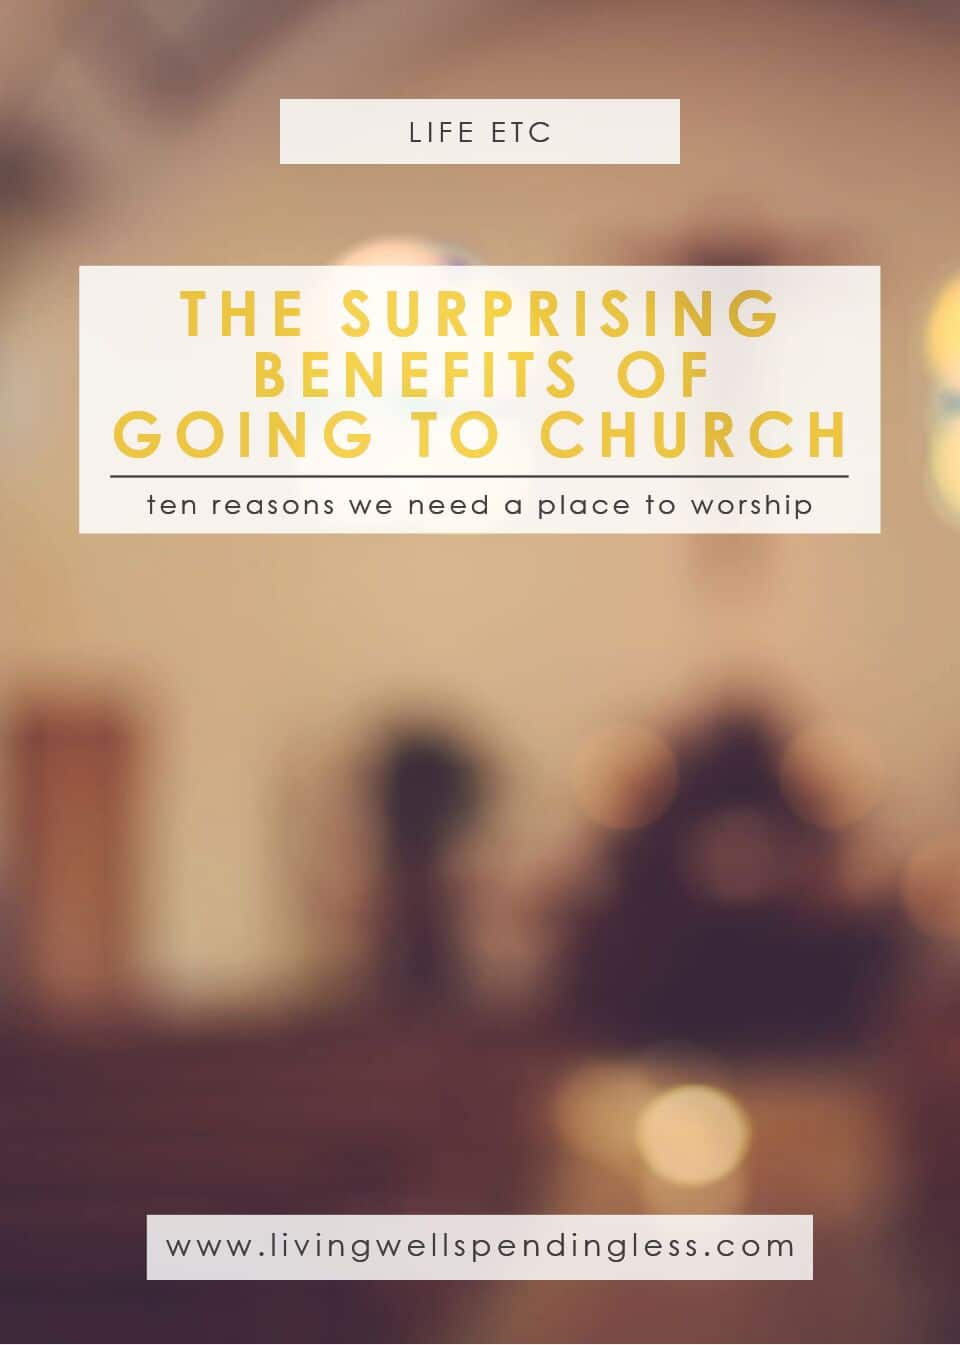 The surprising benefits of going to church: ten reasons we need a place to worship.